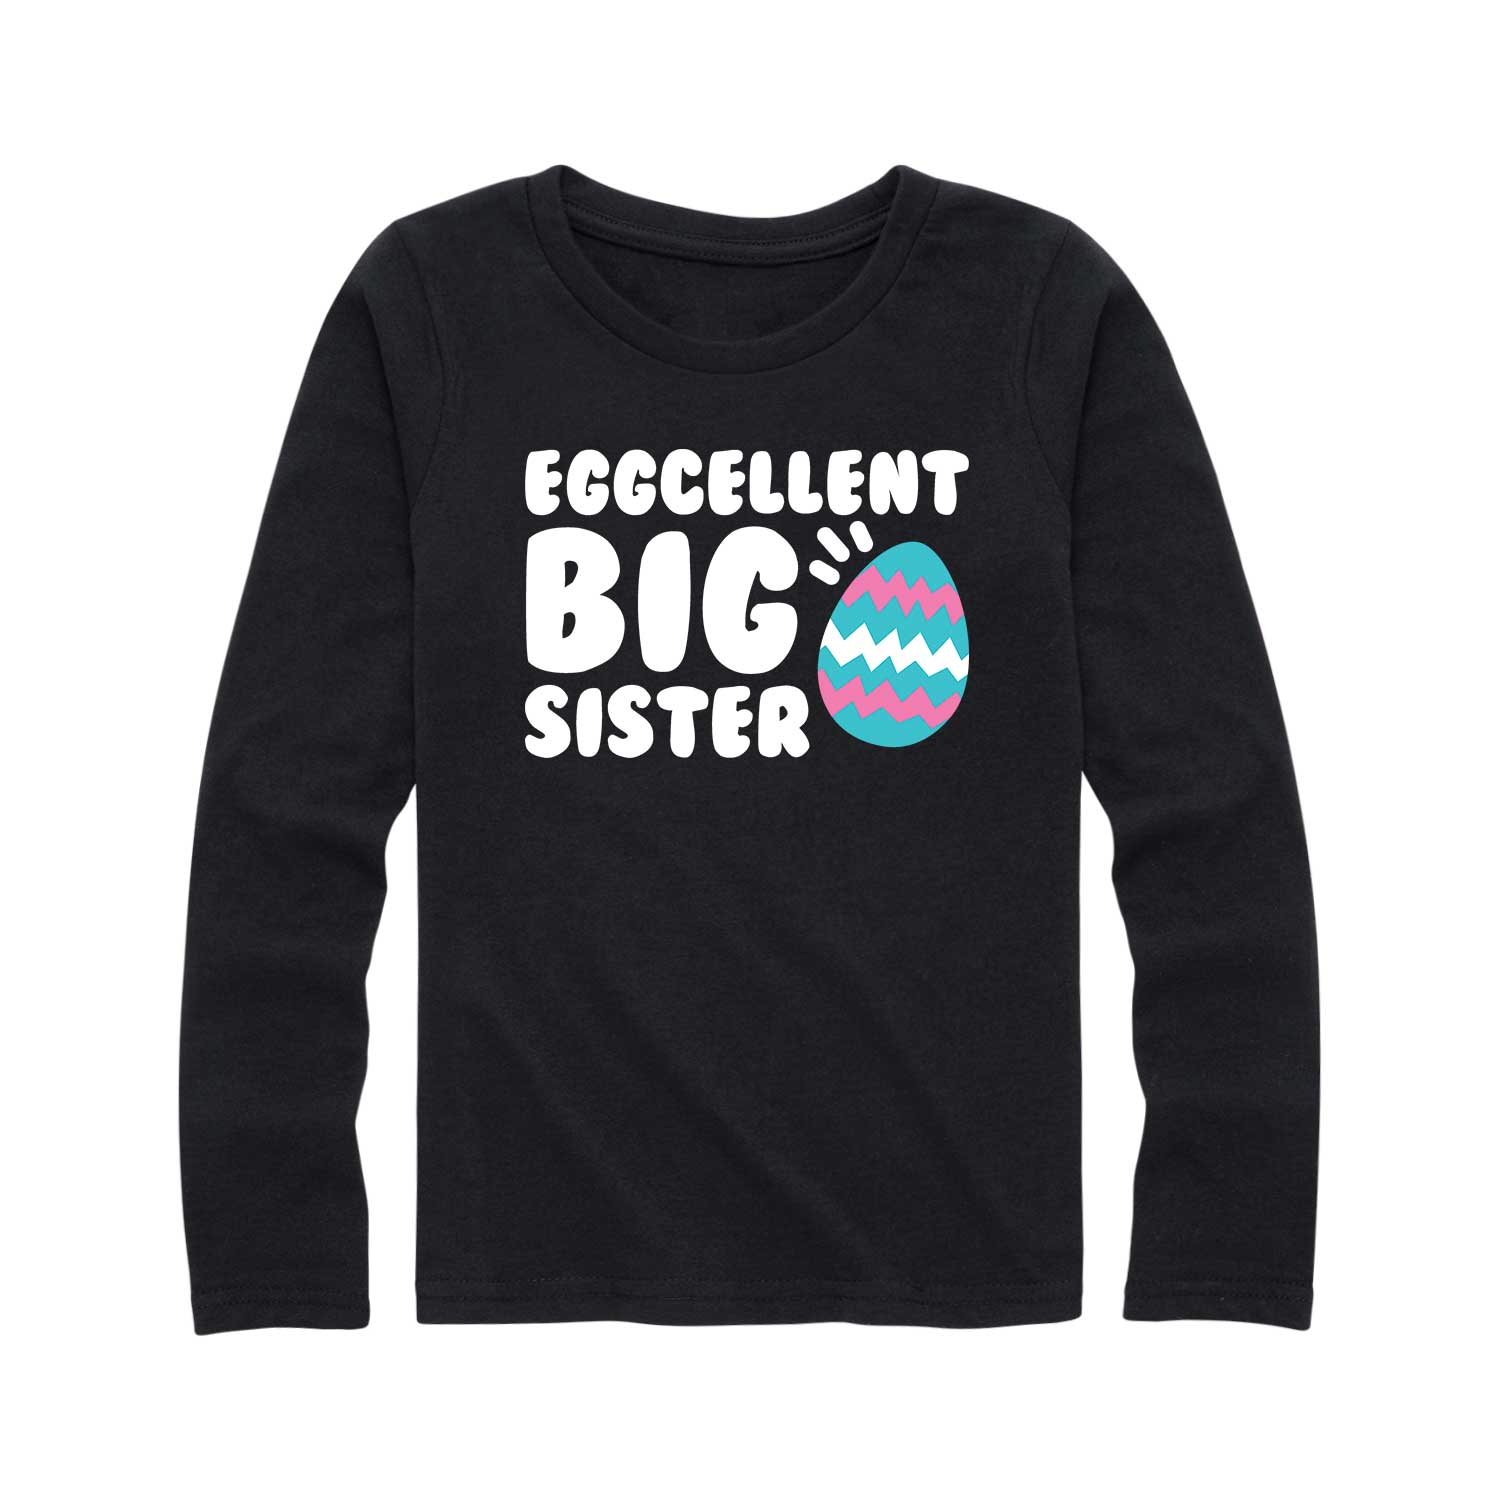 Eggcellent Big Sister - Youth Girl Long Sleeve T-Shirt